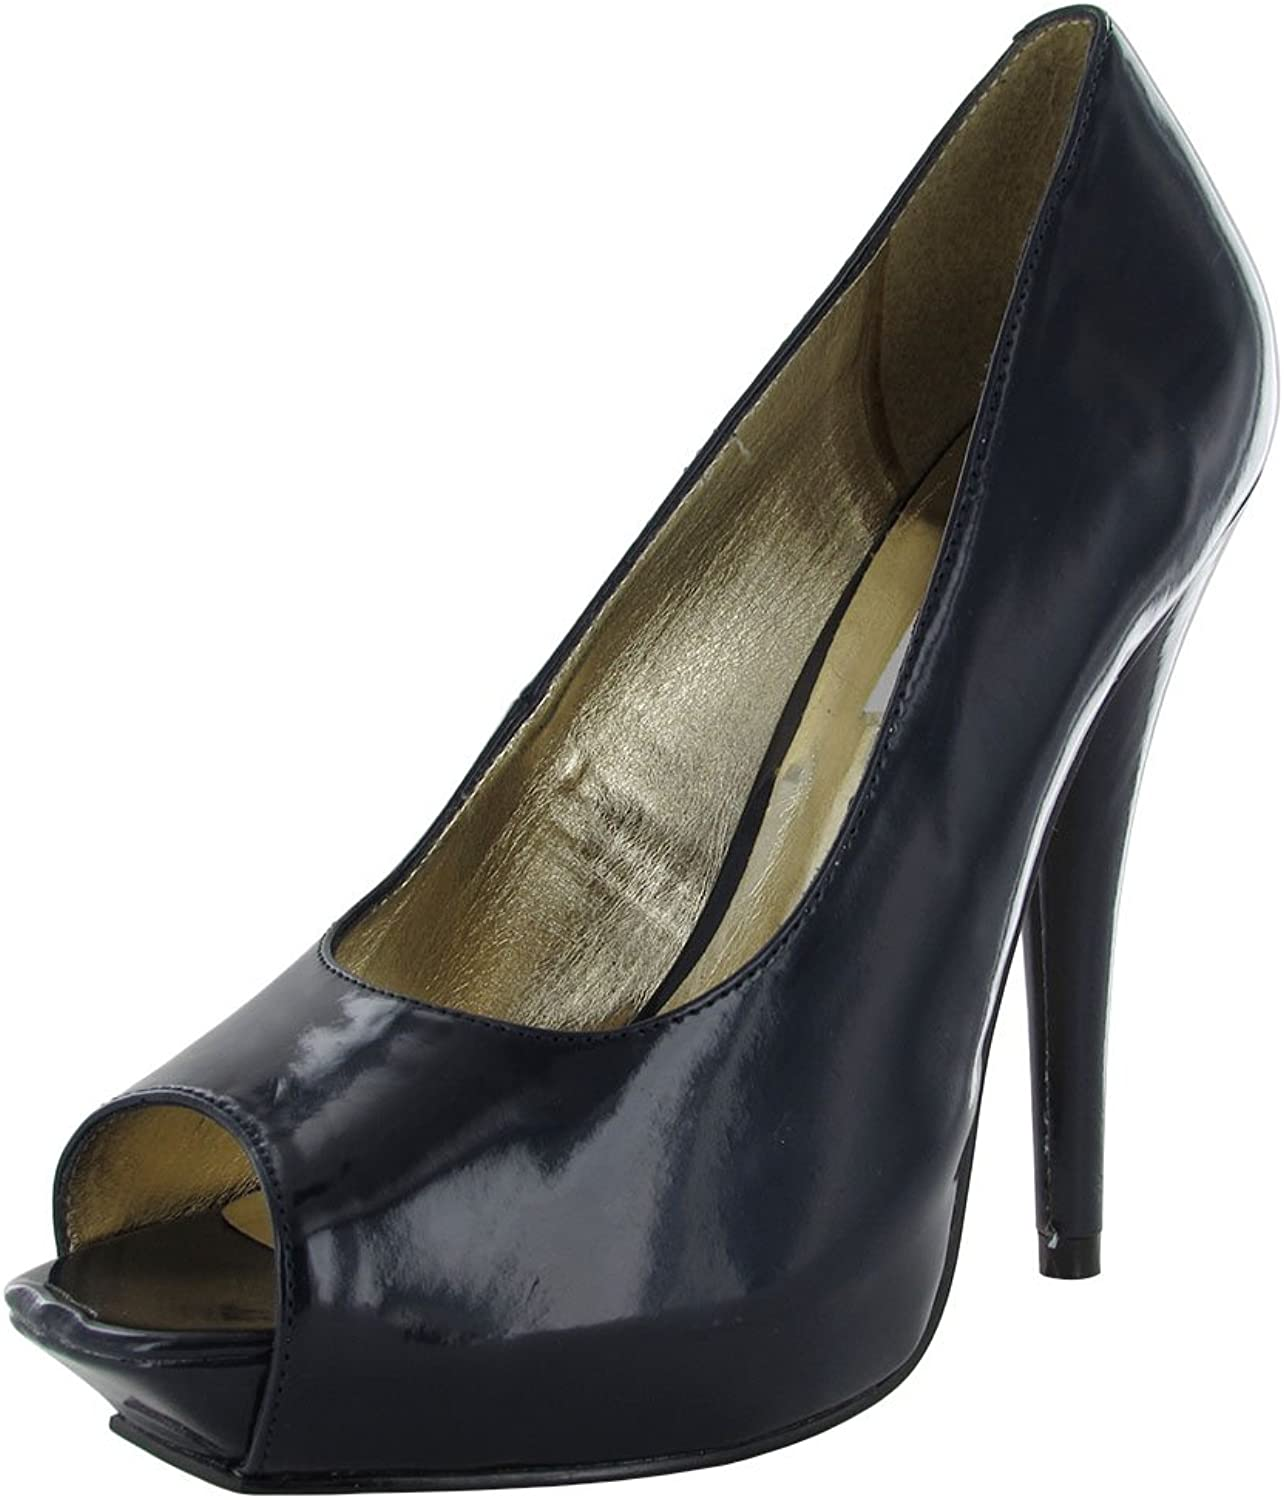 Steve Madden Womens P-Renee Classic Stilleto Platform Pump, Navy, US 8.5